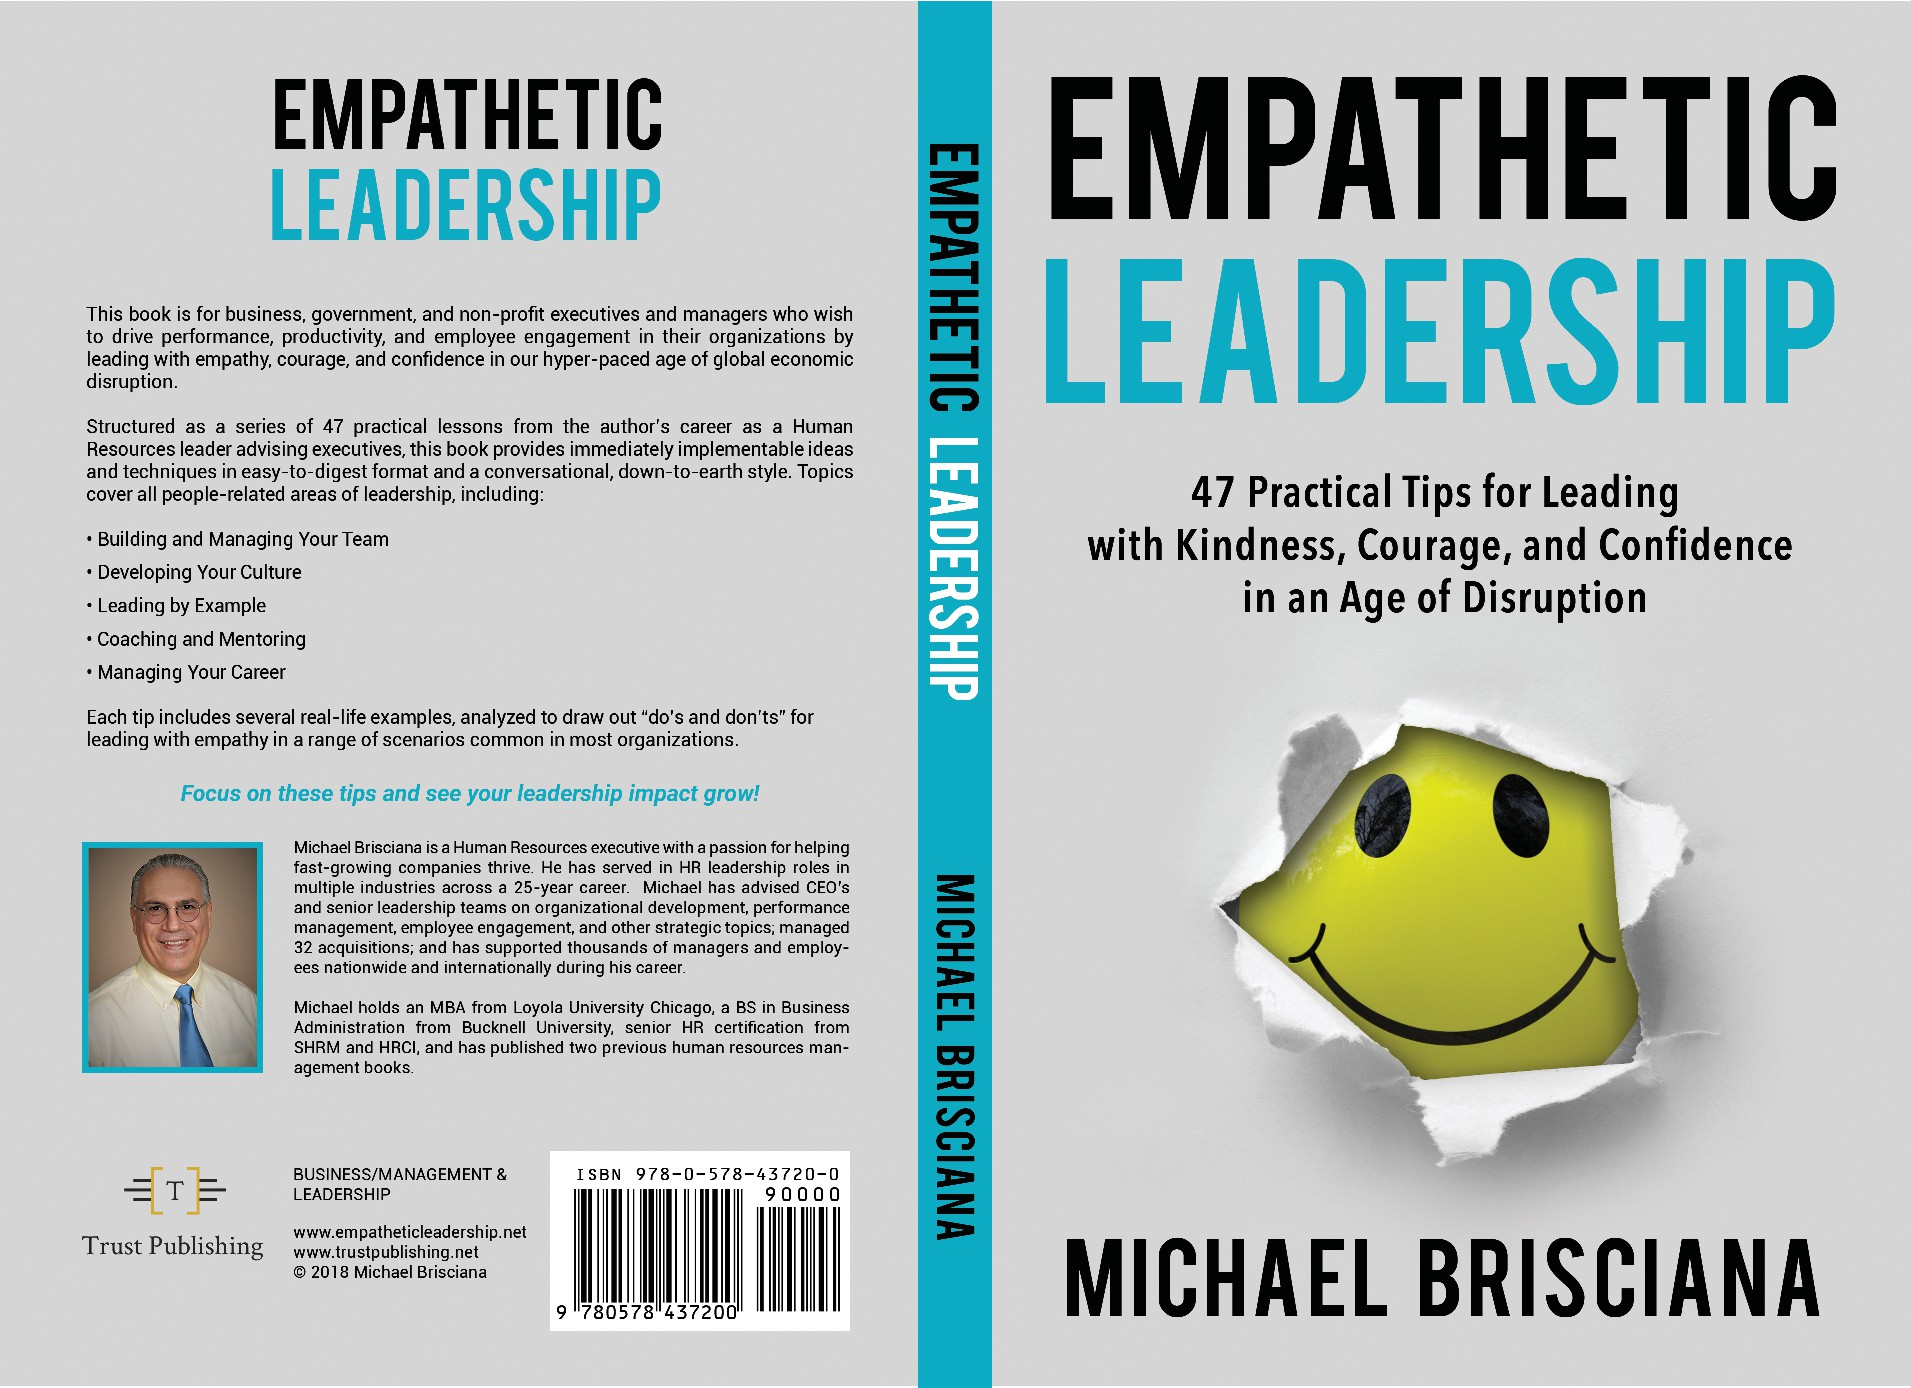 Clean, warm, engaging design needed for business book about leading with empathy and kindness.